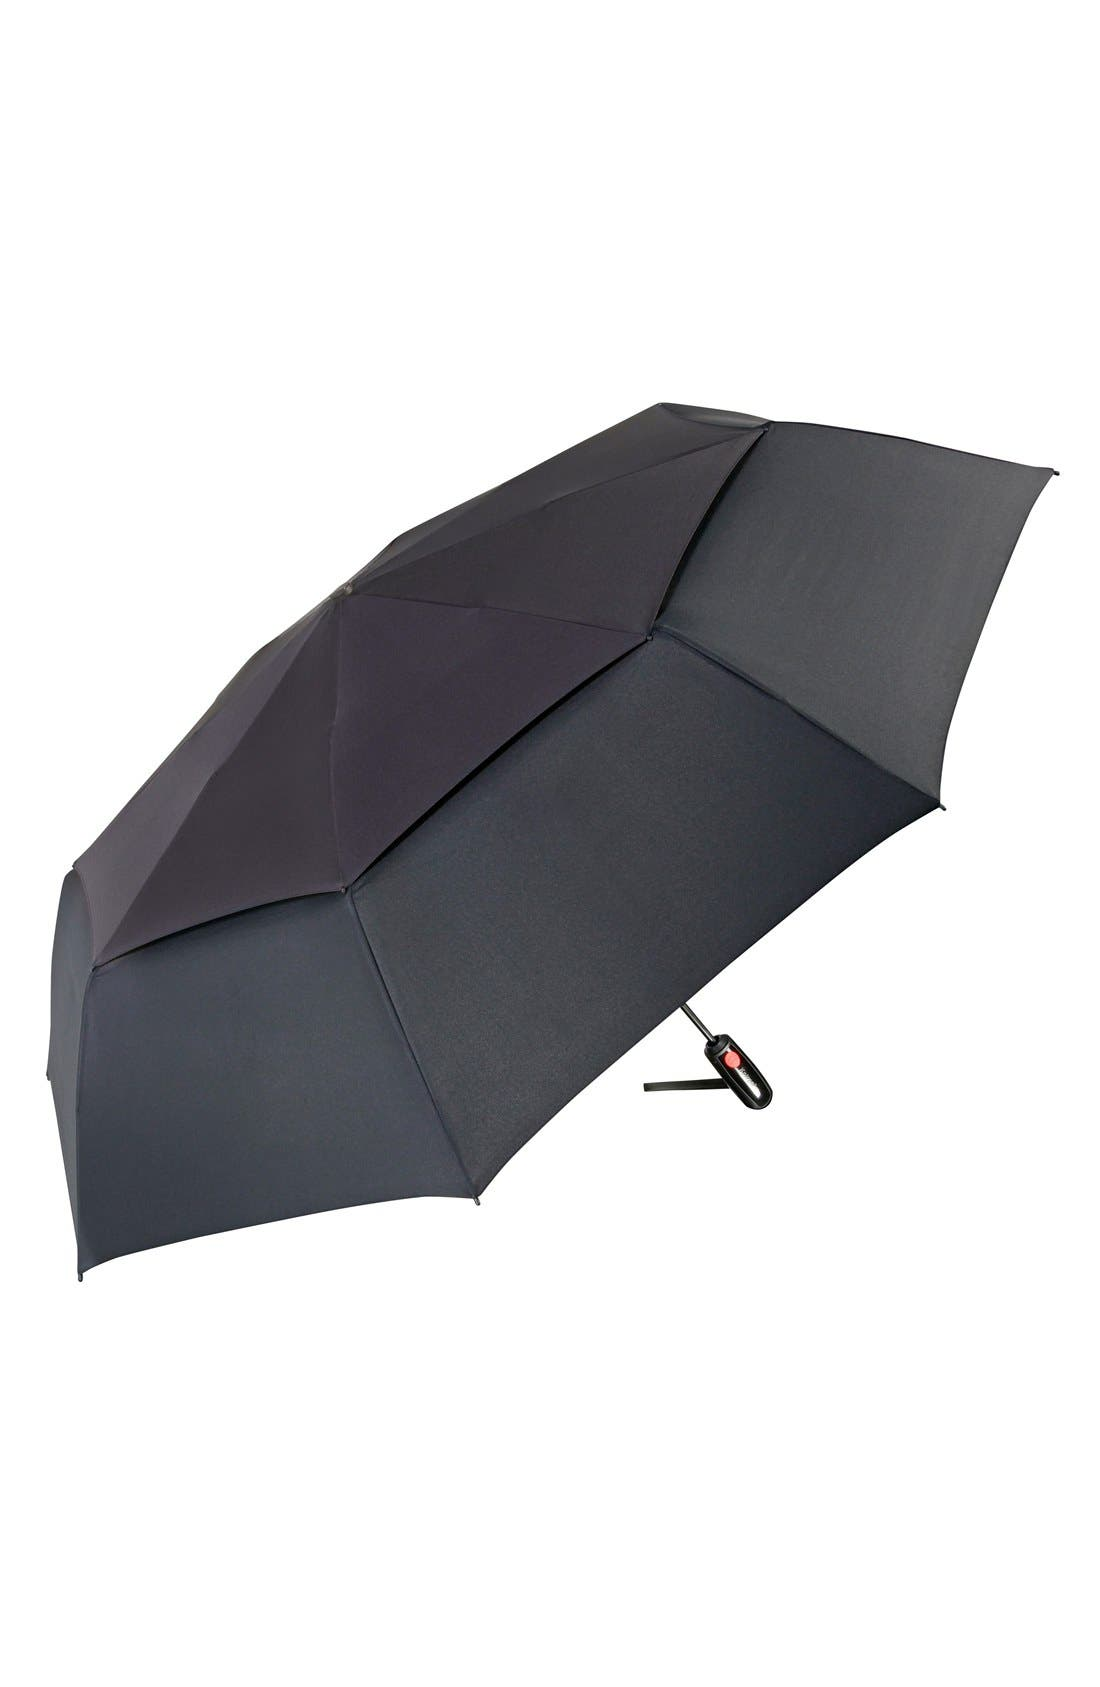 Main Image - Knirps 'Xtreme Duomatic' Umbrella